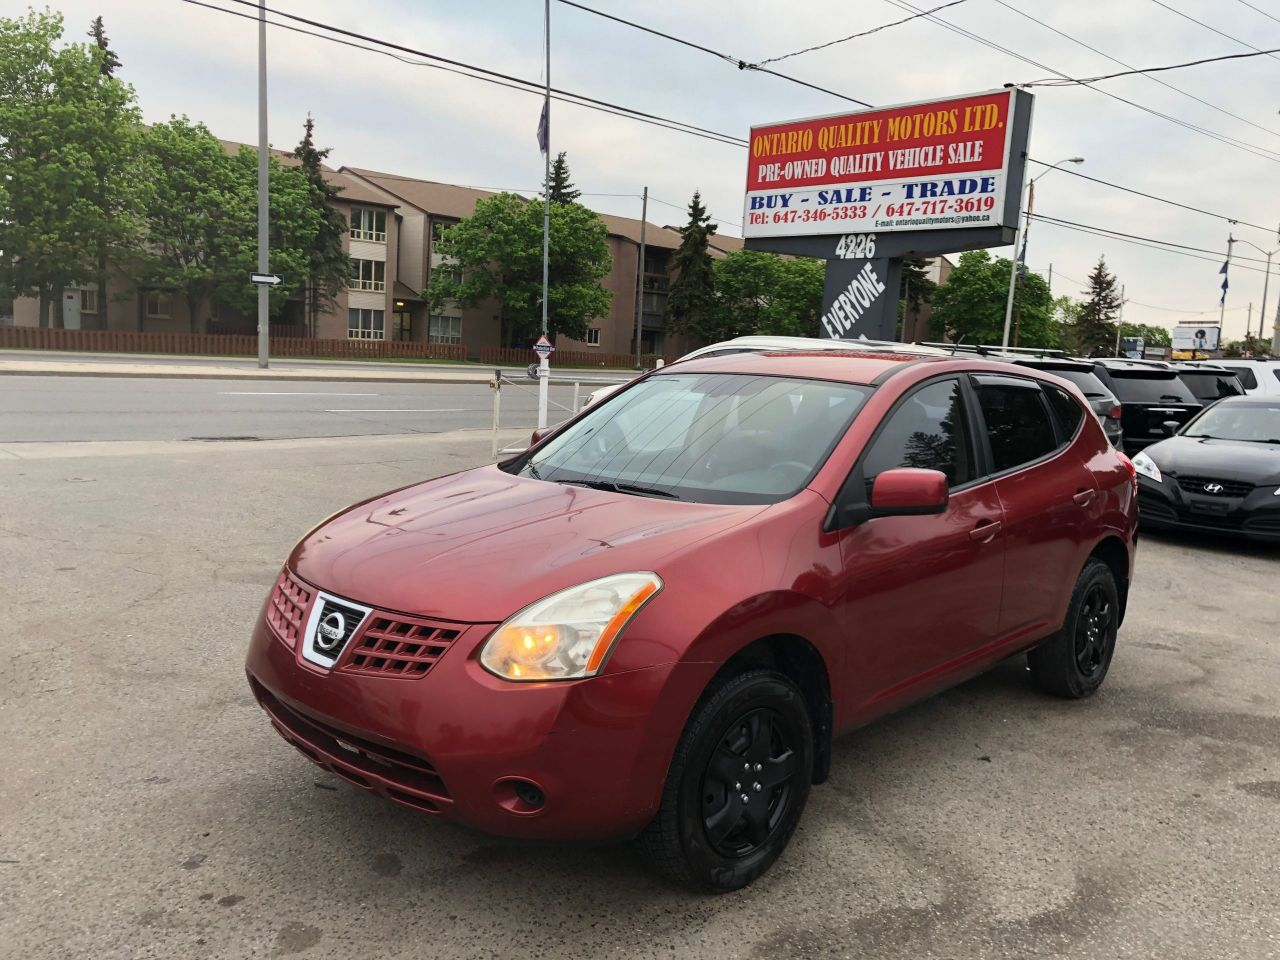 Ontario Quality Motors >> 2008 Nissan Rogue Ontario Quality Motors Ltd